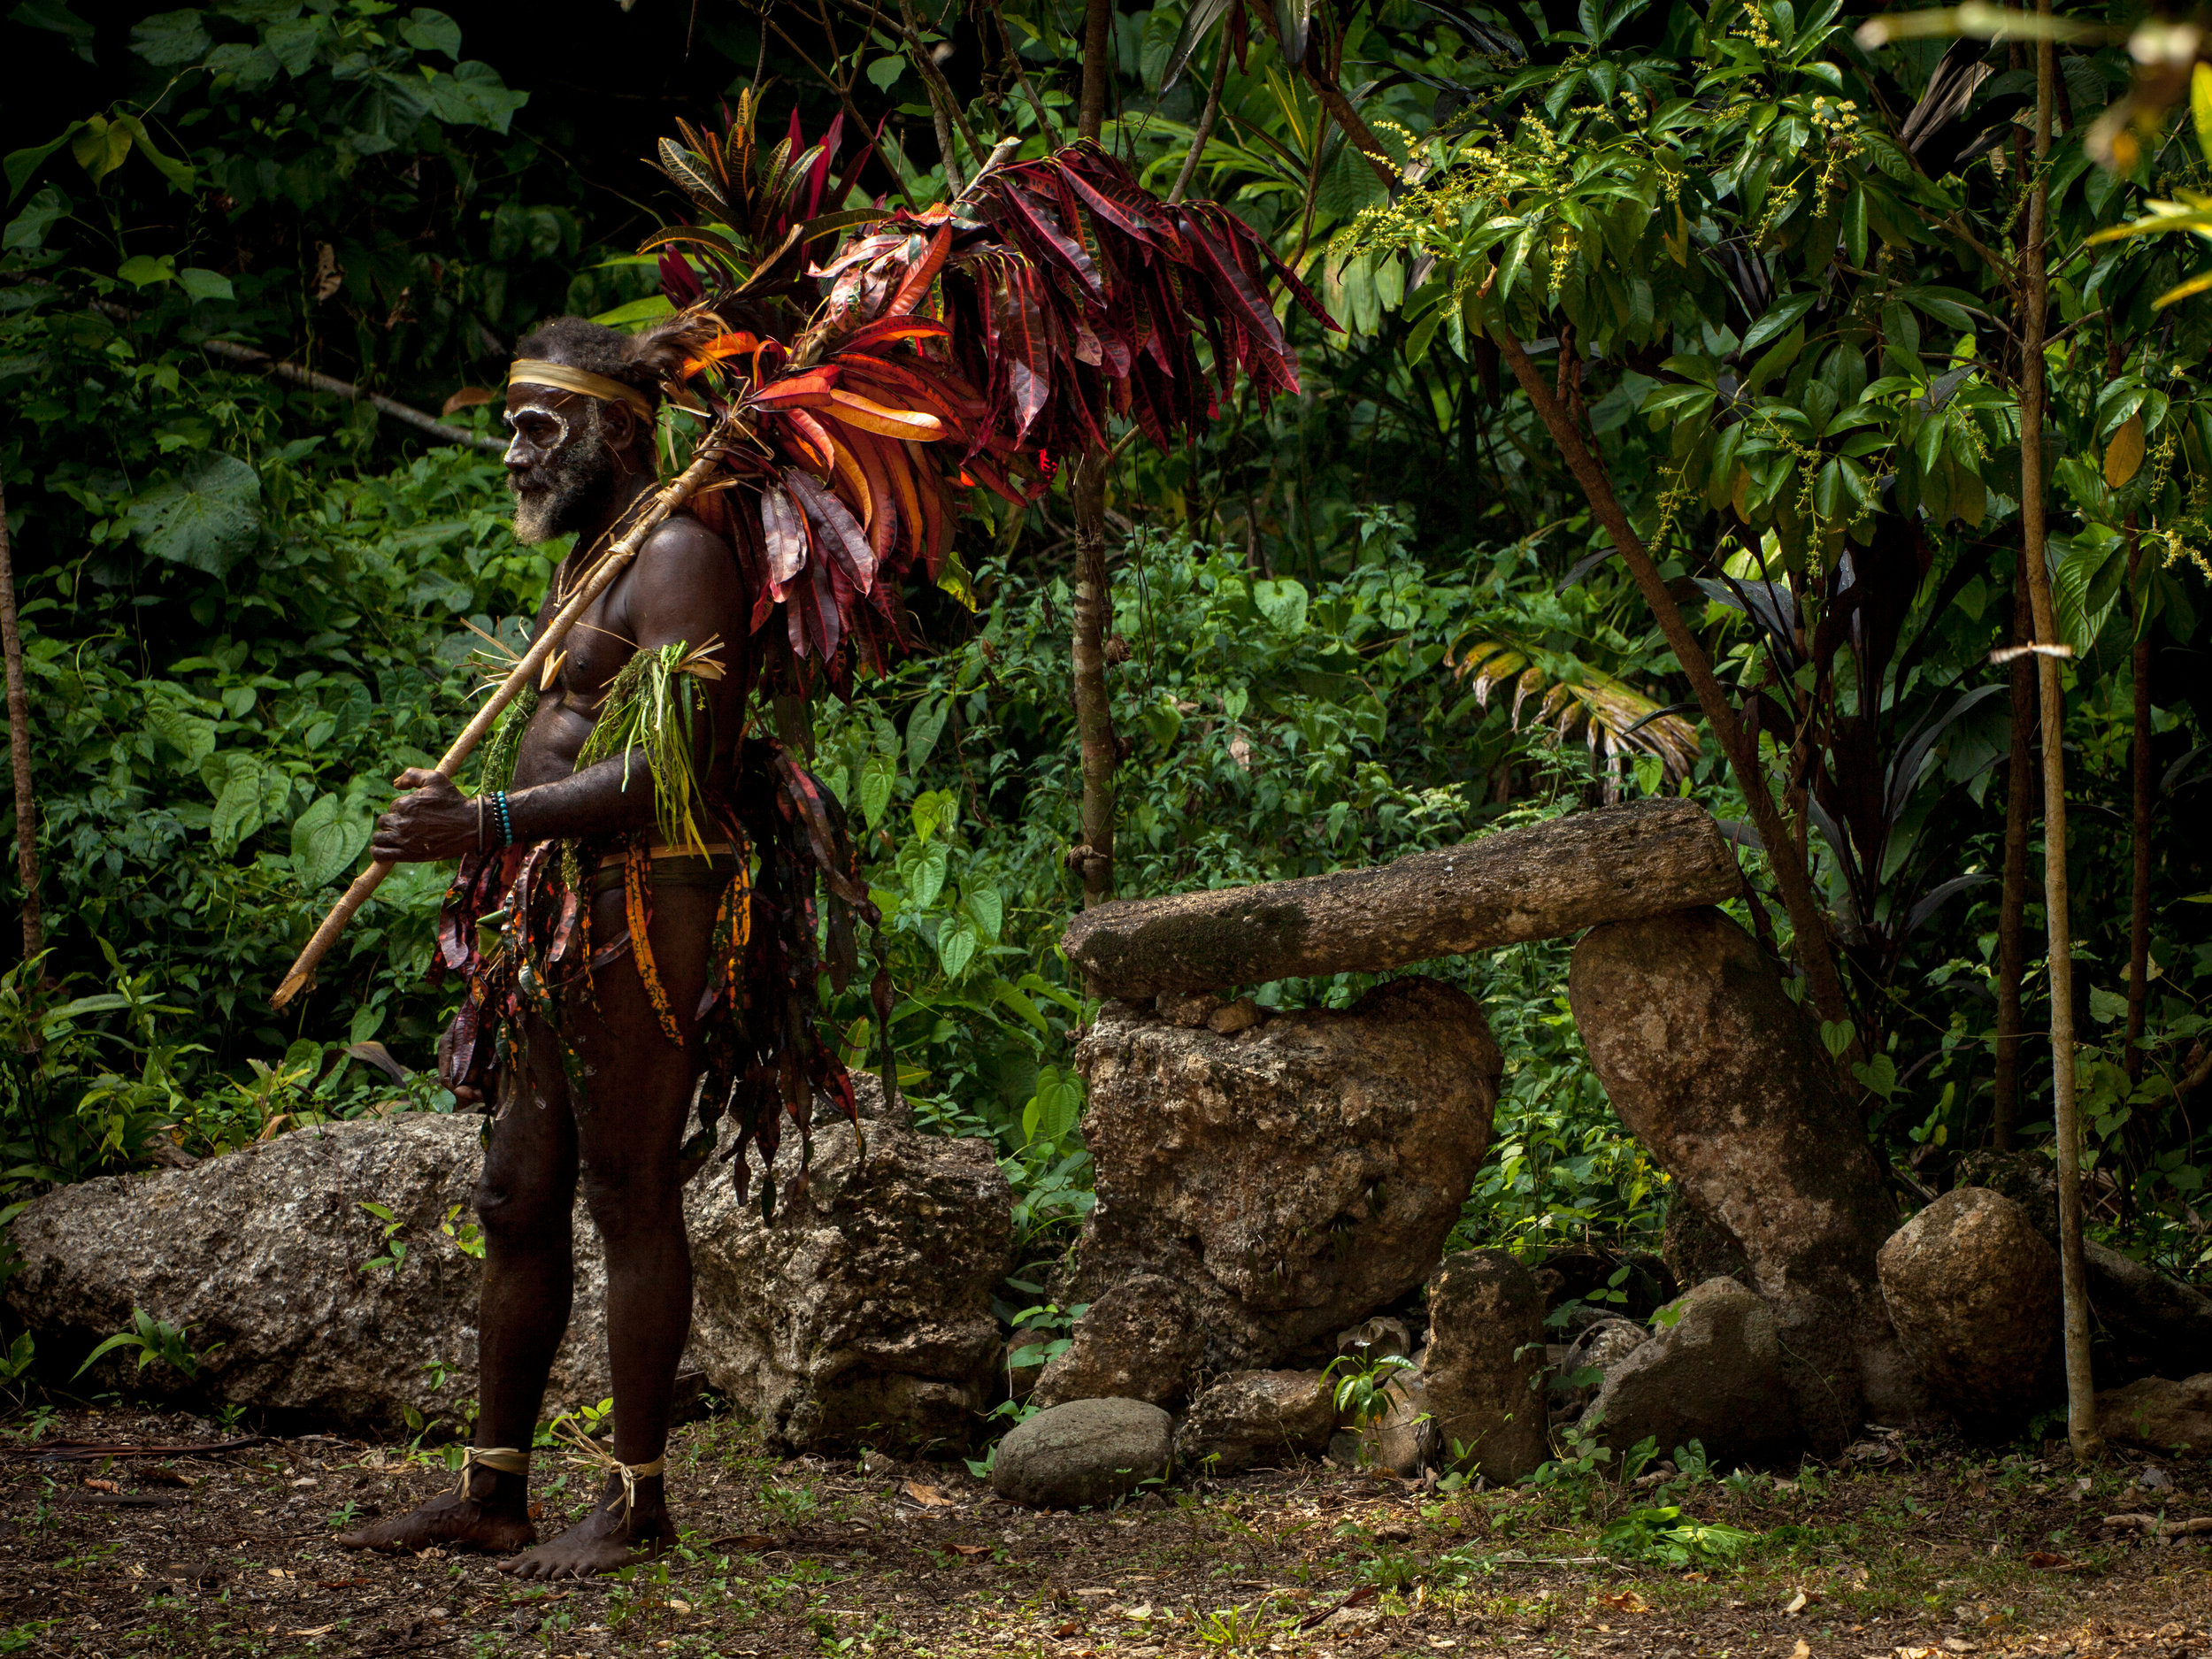 Malakula Dancer in Jungle